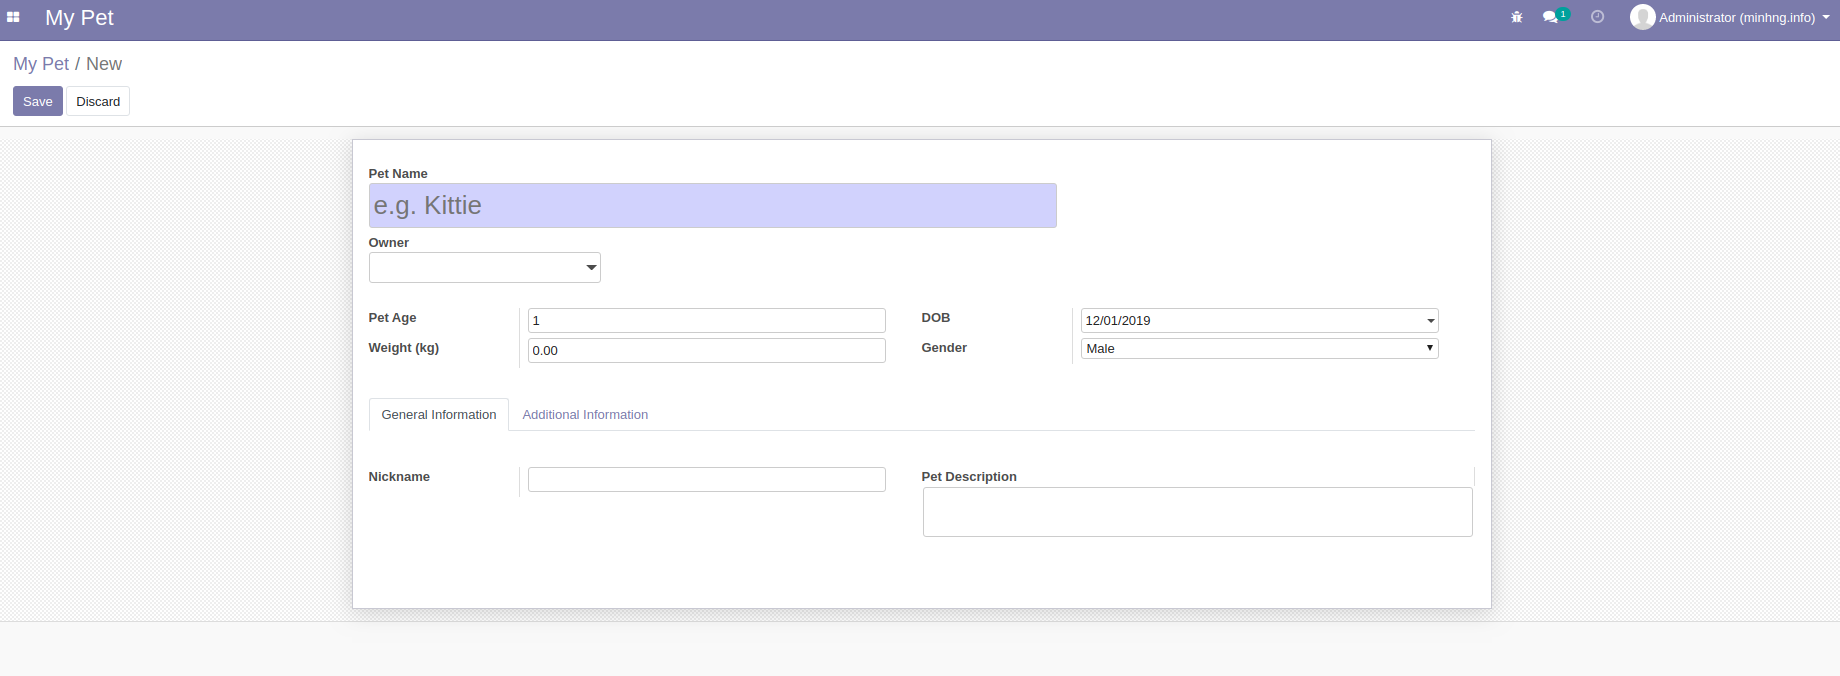 odoo 13 form view